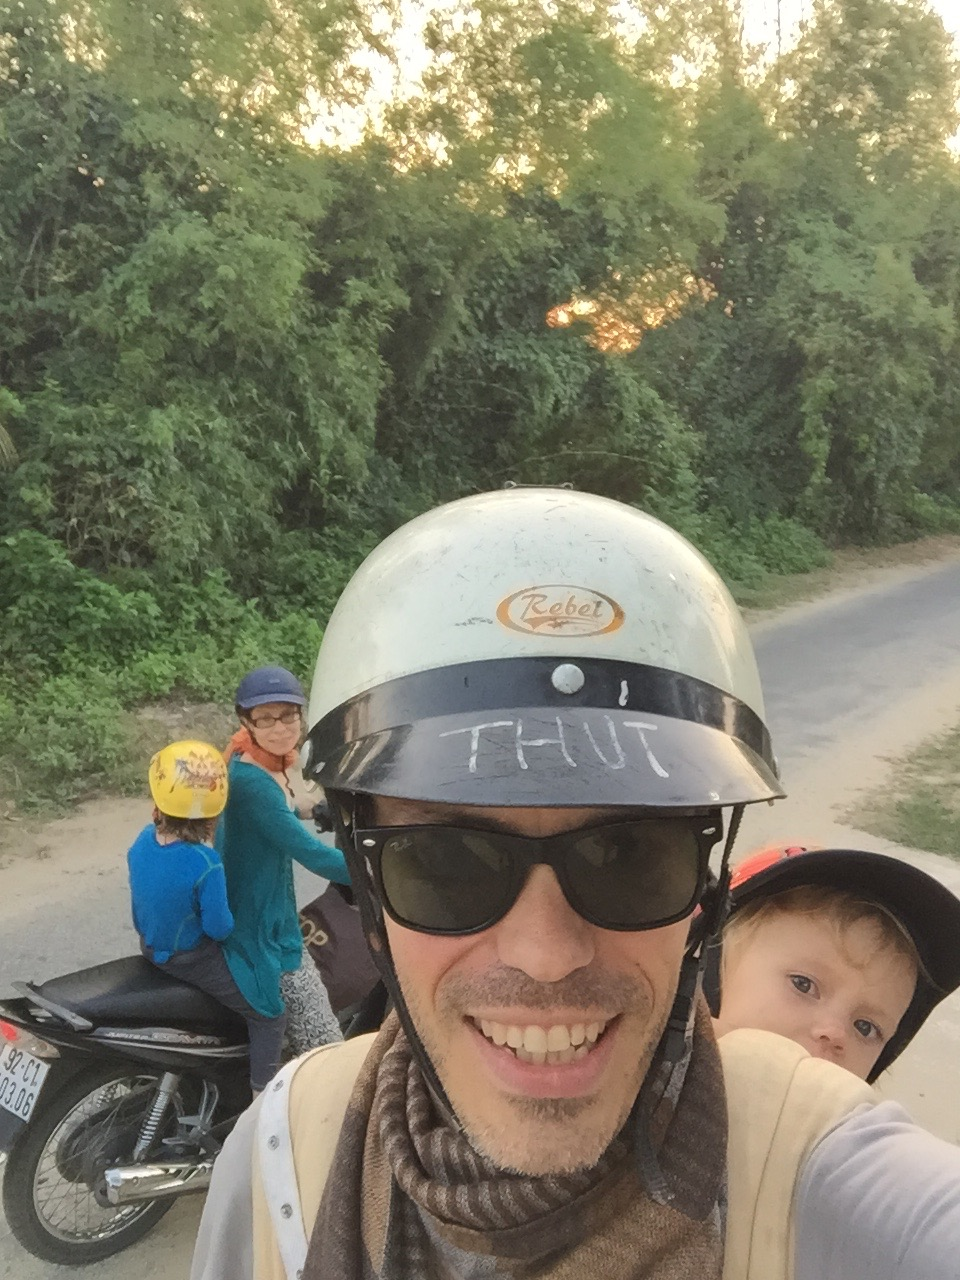 Eirikur Orn Norddahl and family near Hoi An, Vietnam, 2015